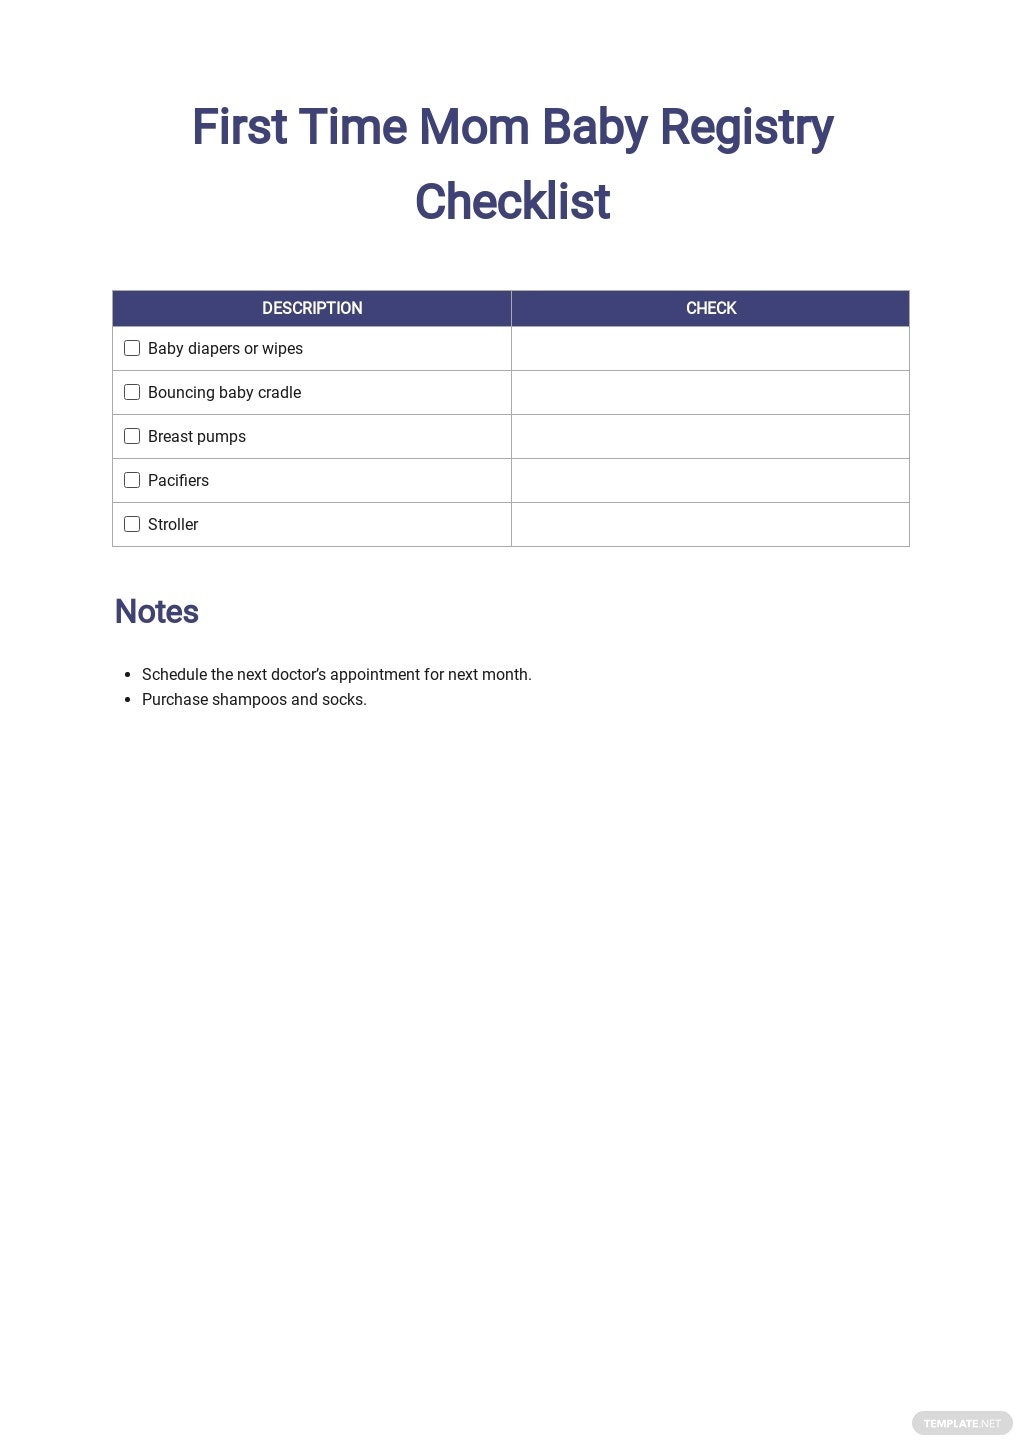 First Time Mom Baby Registry Checklist Template